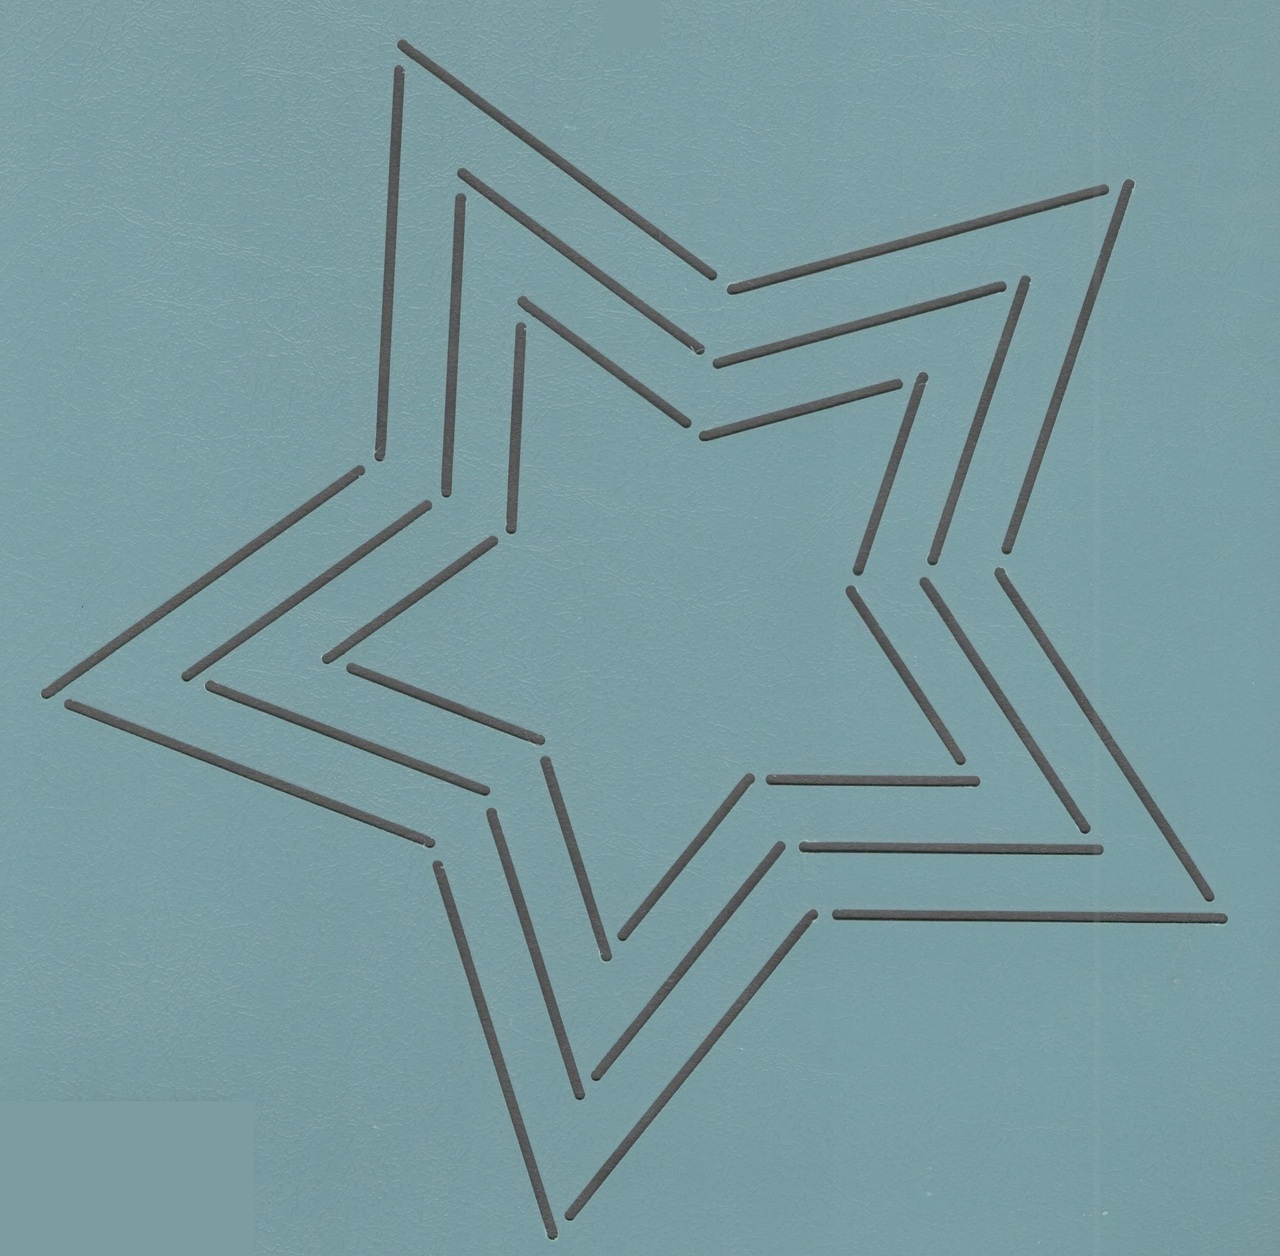 Five Pointed Star 5